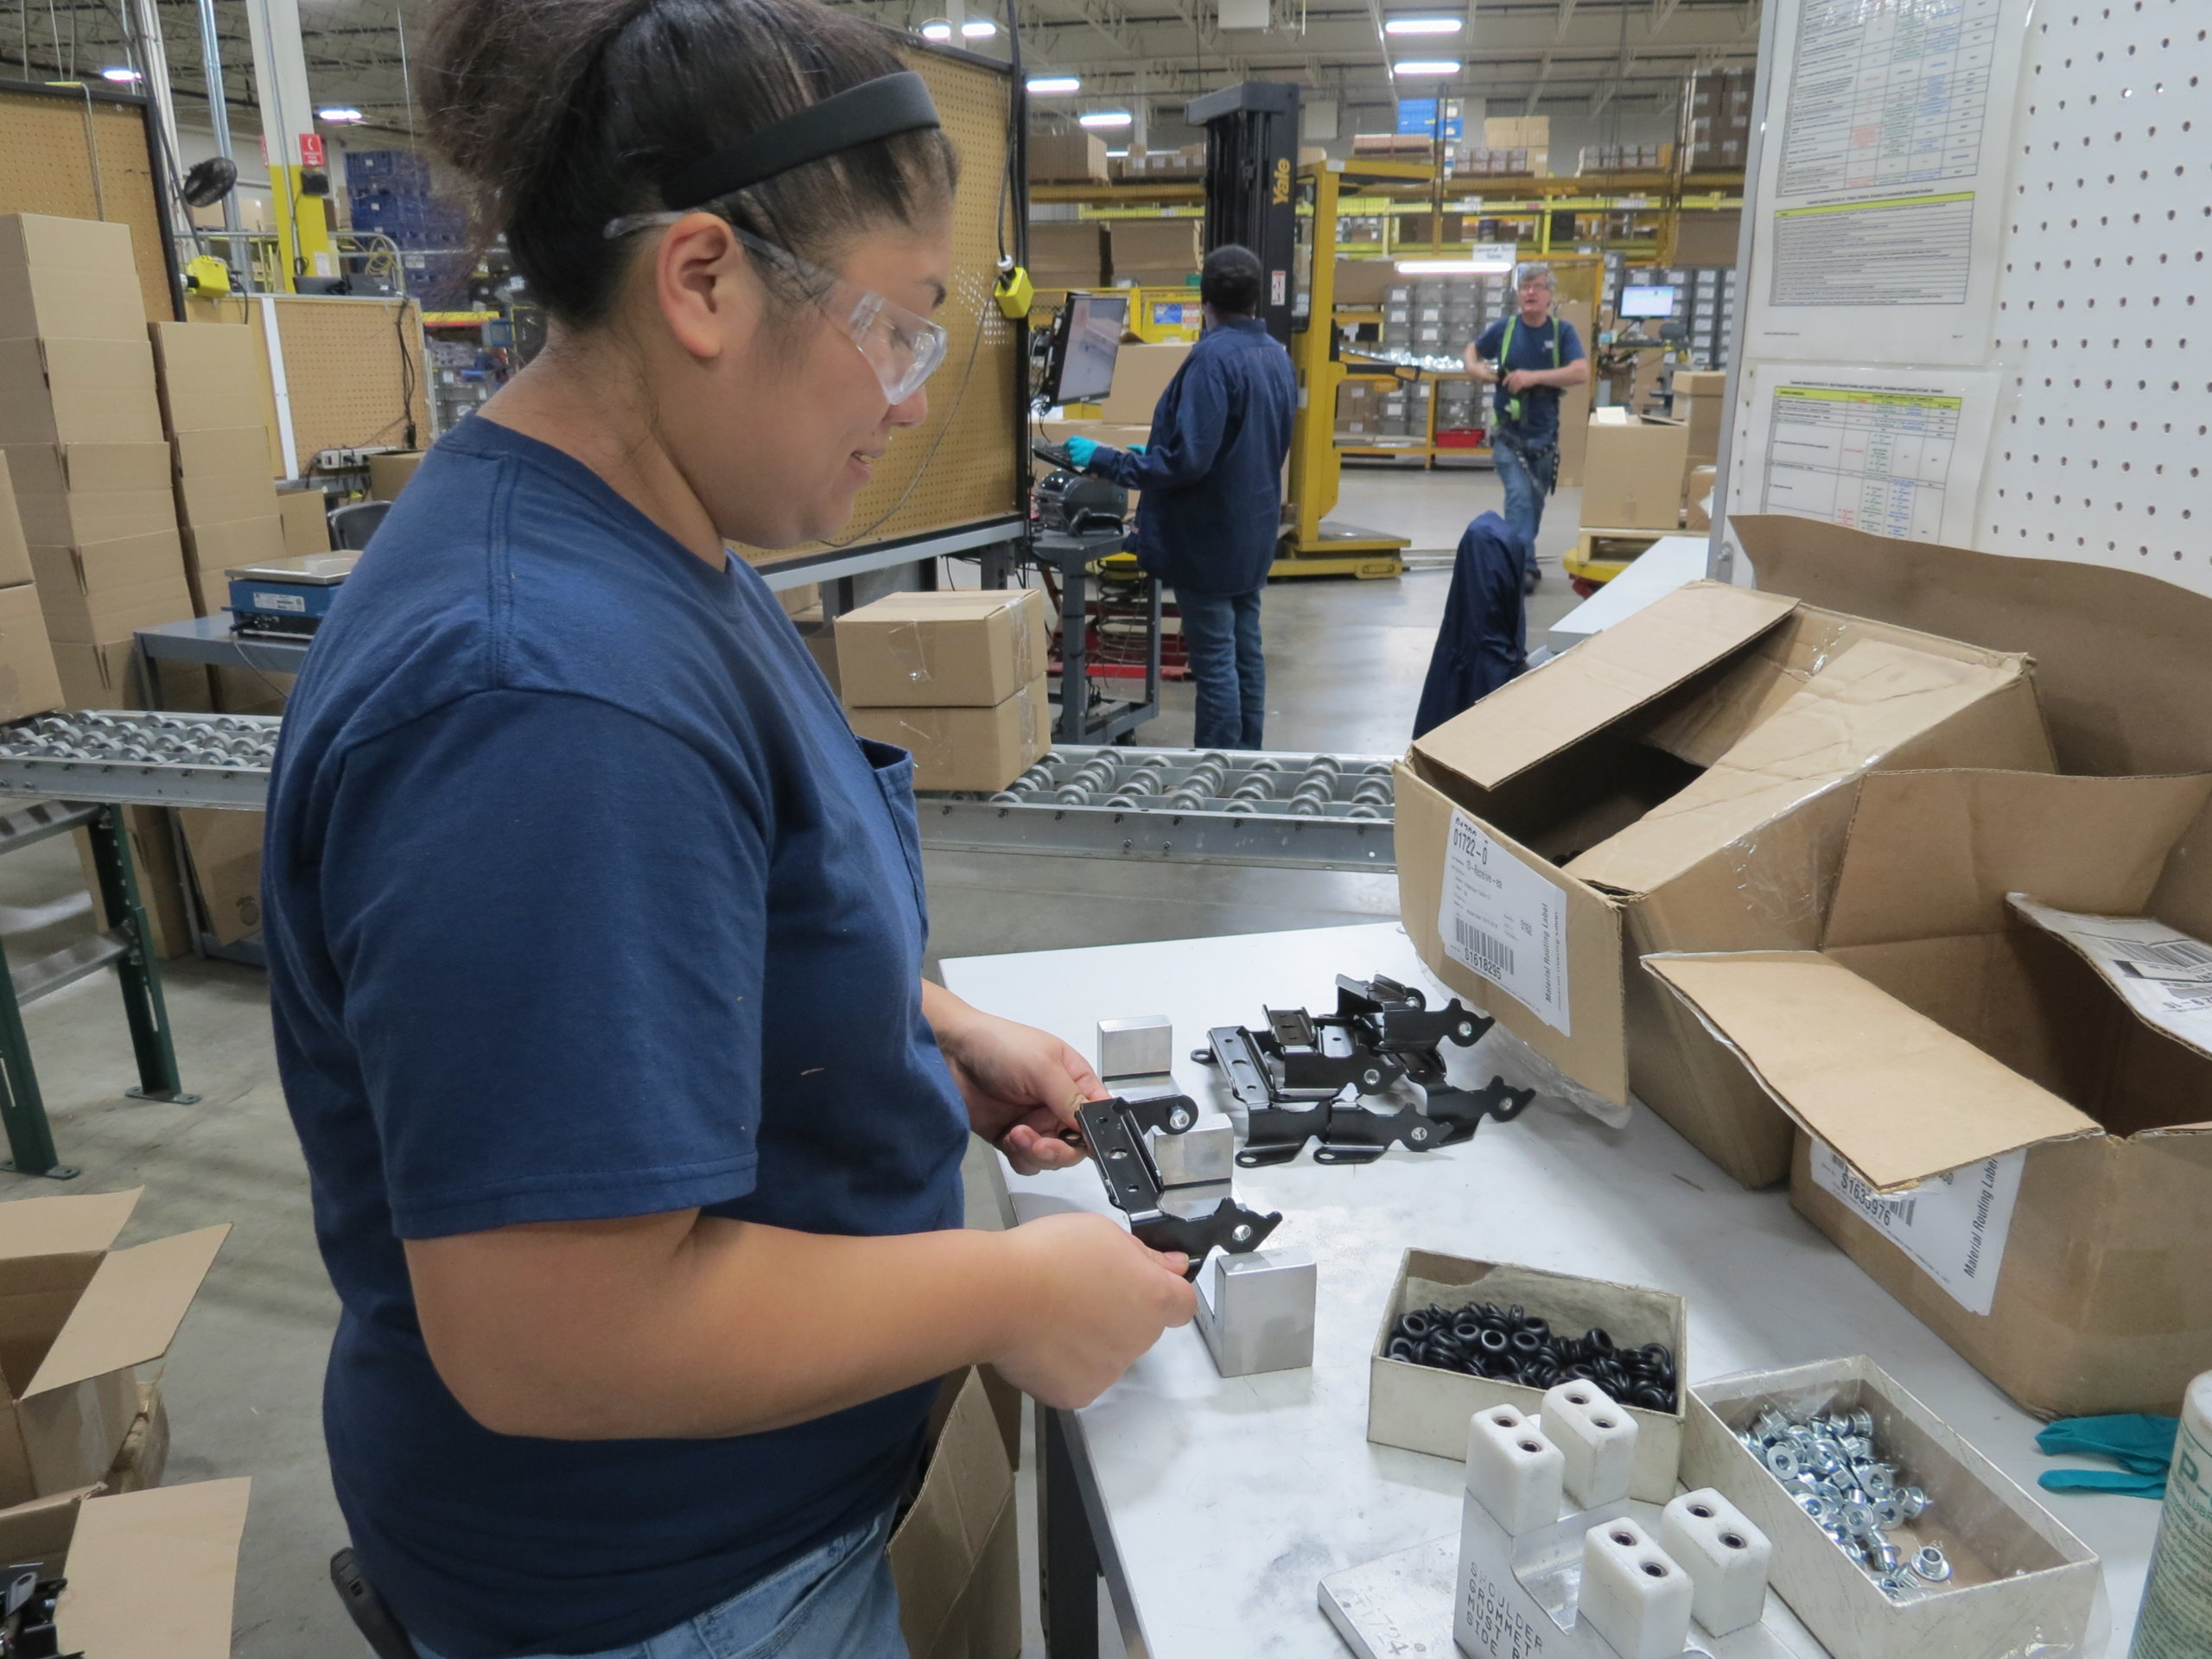 inspecting metal parts with quality gauges